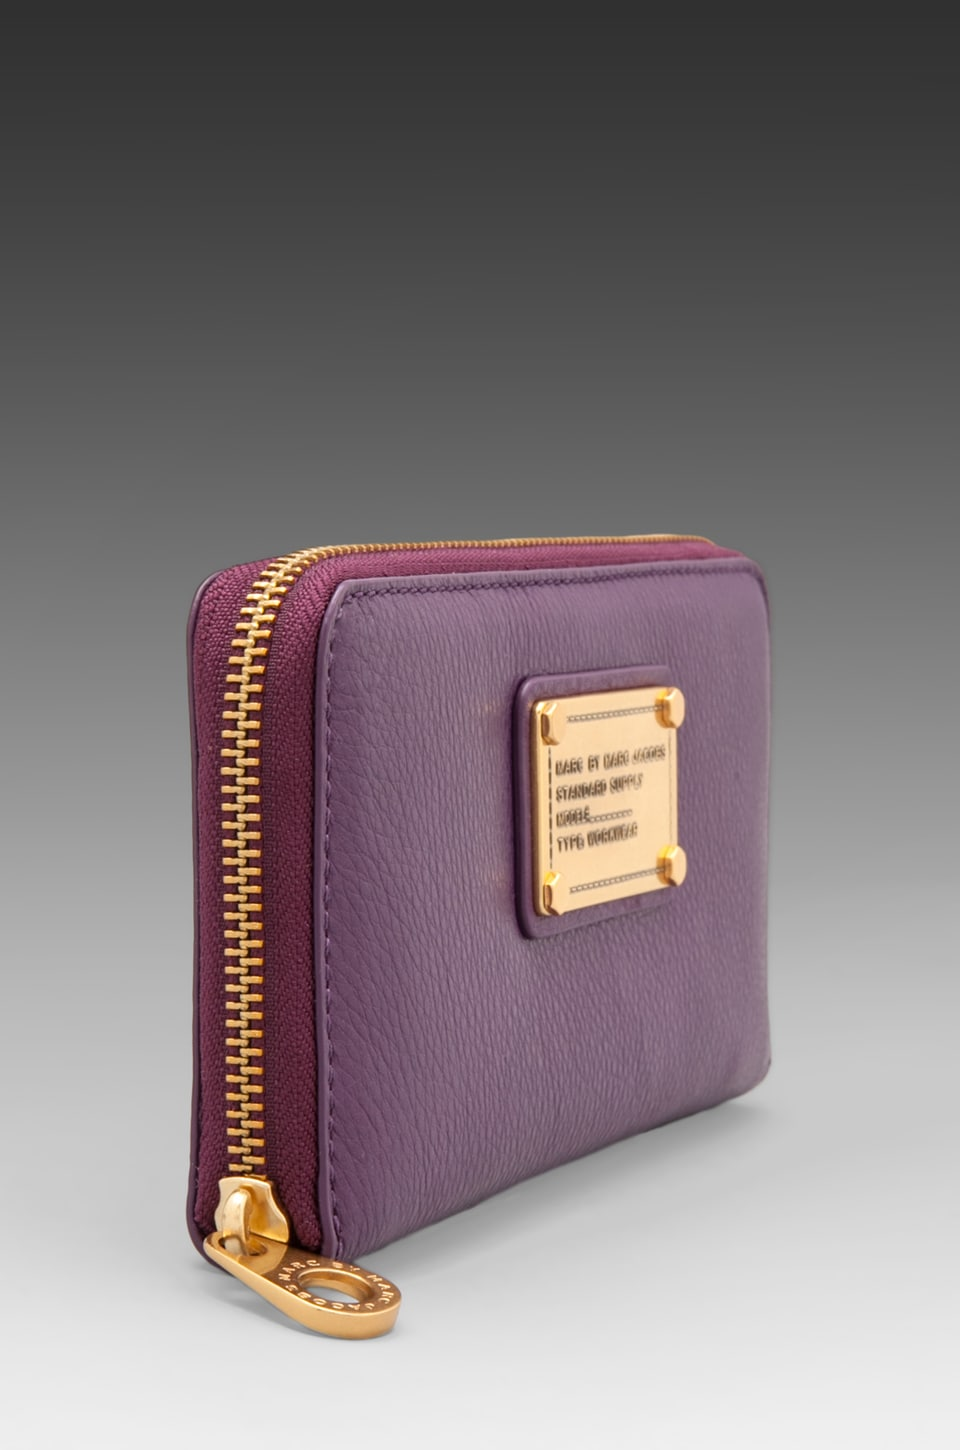 Marc by Marc Jacobs Classic Q Vertical Zippy in Pansy Purple